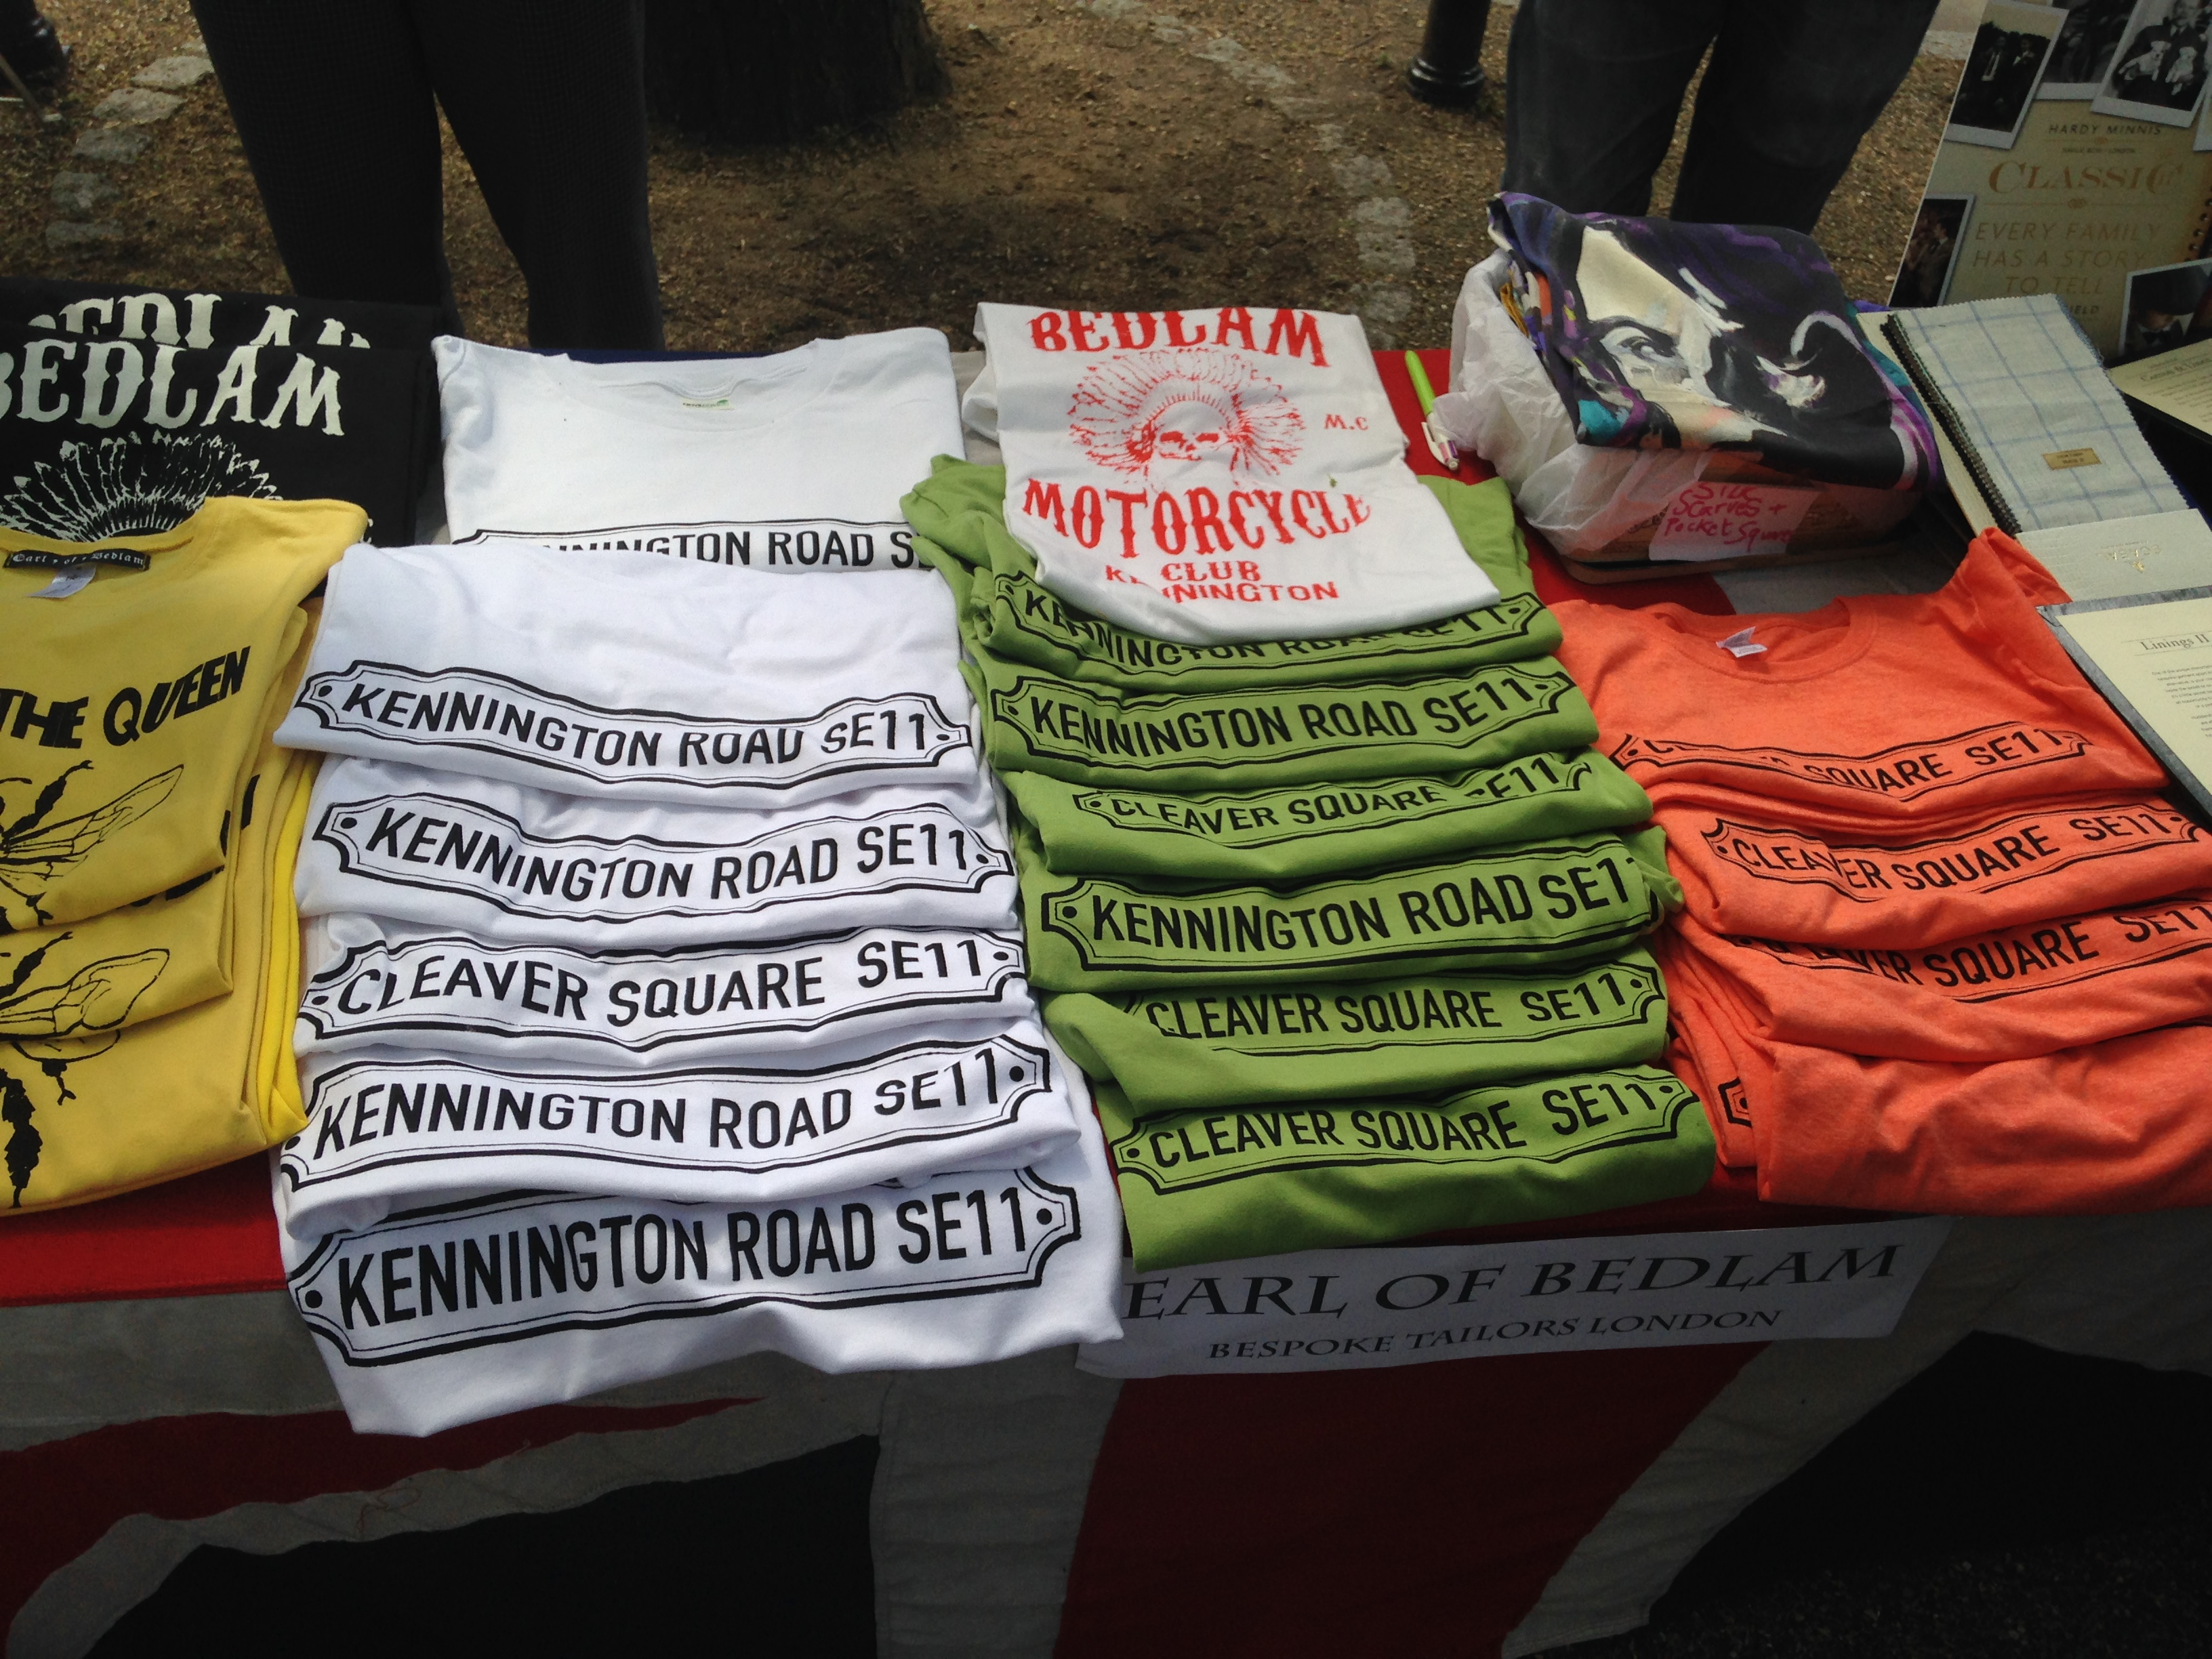 Earl of Bedlam t-shirts at Kennington Village Fete - kenningtonrunoff.com